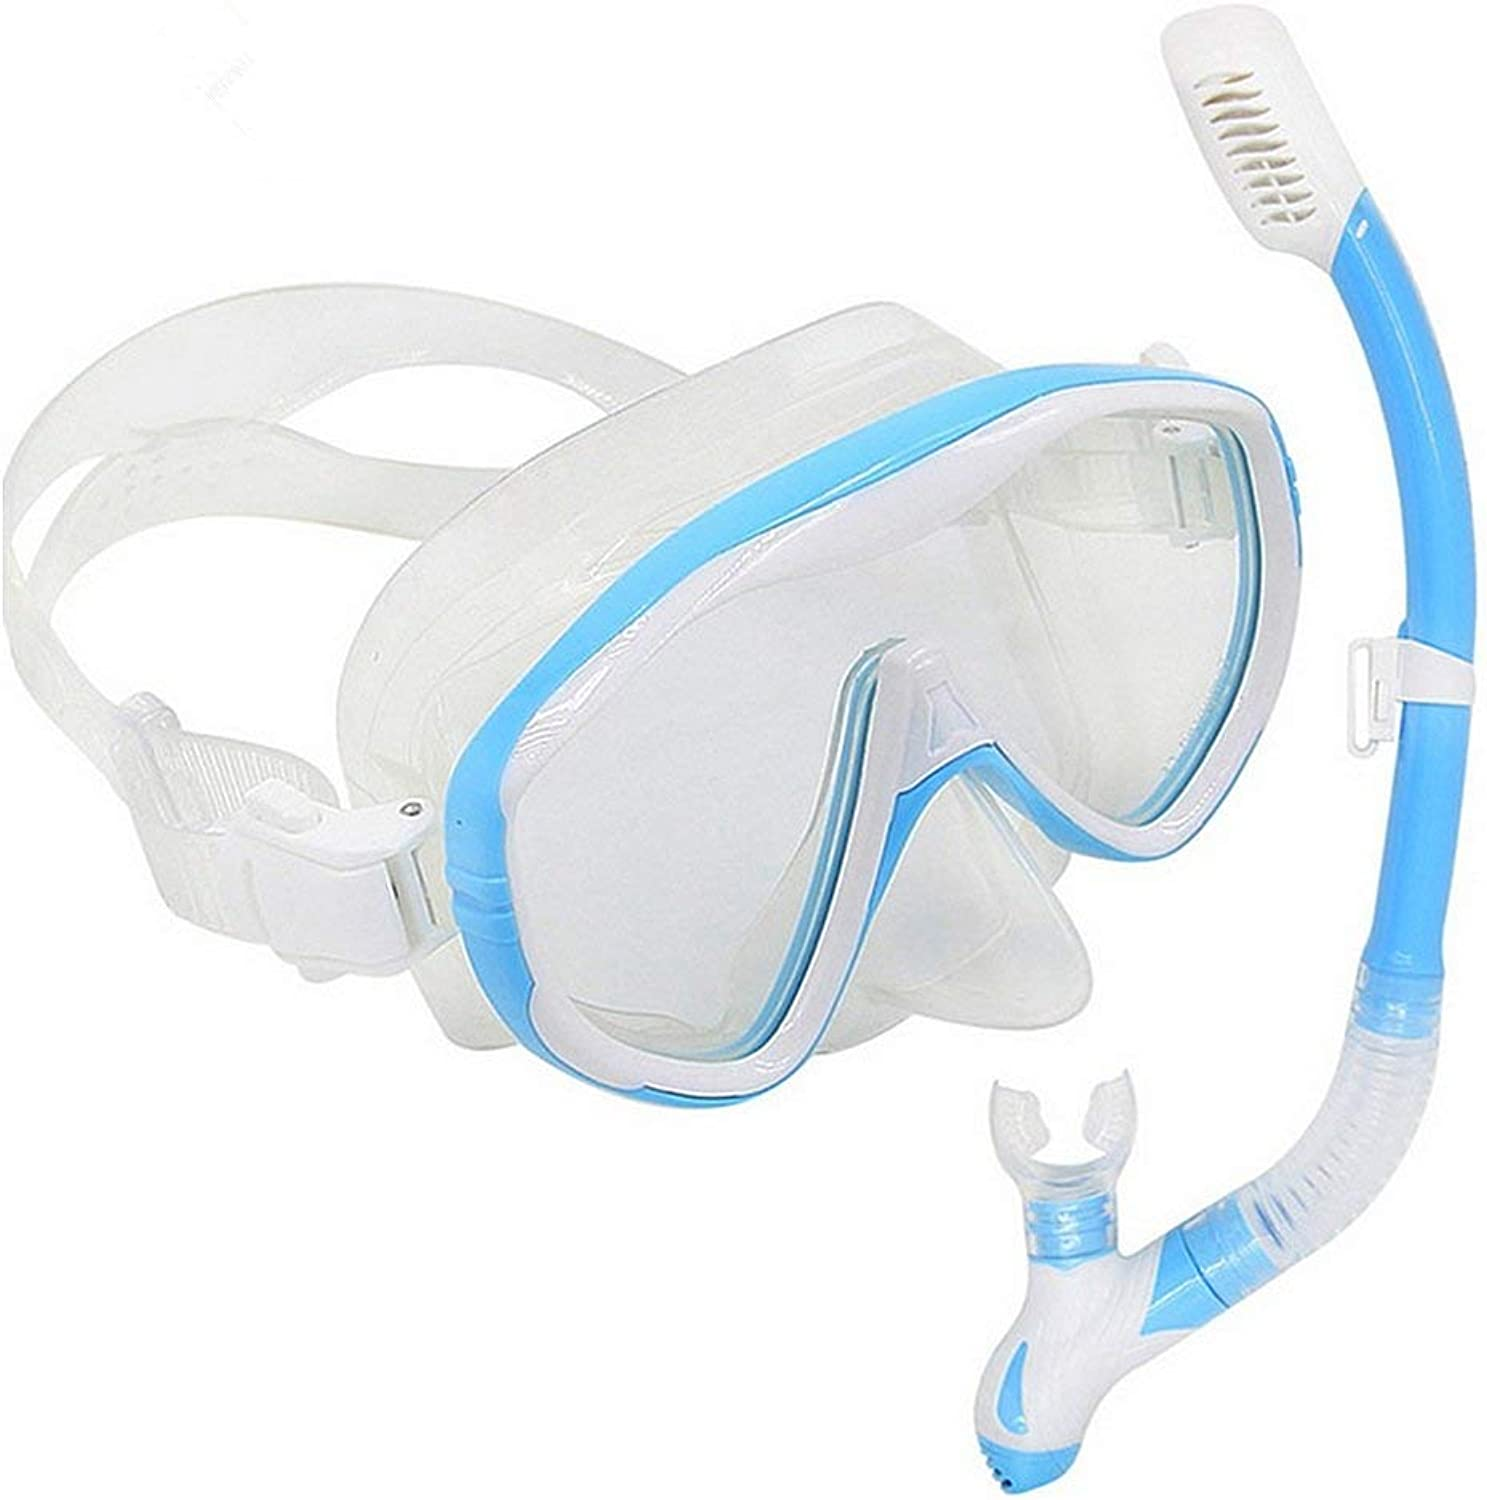 Unisex Swimming Gear Diving mask Adult Swimming Gear Diving mask Breathing Tube Set Diving mask Snorkeling Goggles Eye Predection